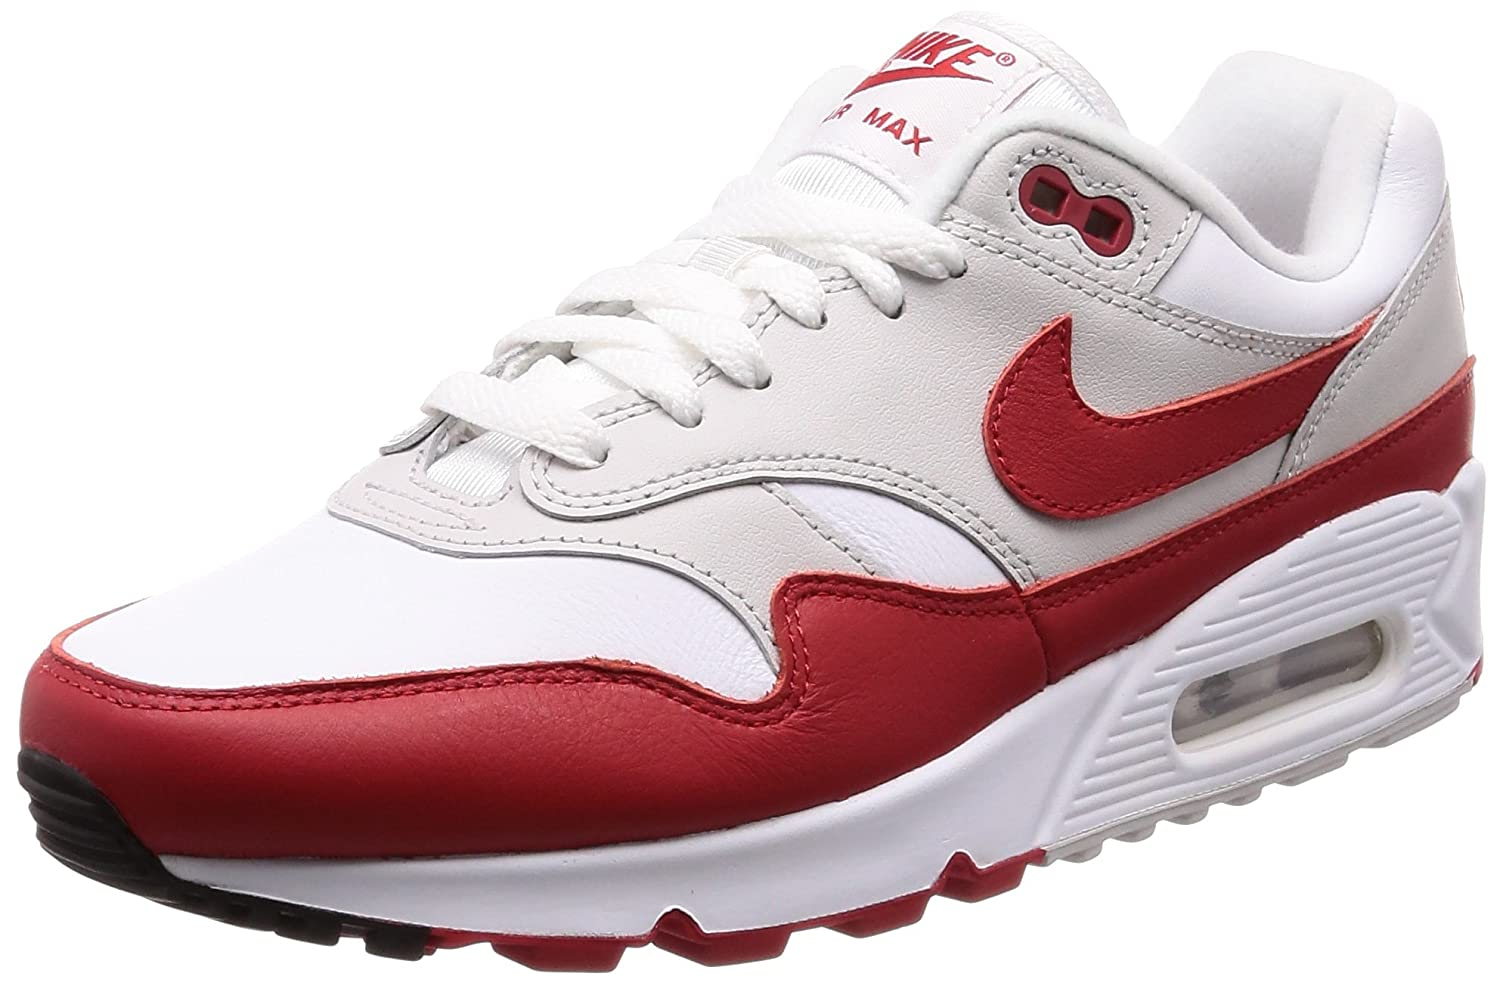 Red Air 901Whiteuniversity Max Men's Nike tCshrQd